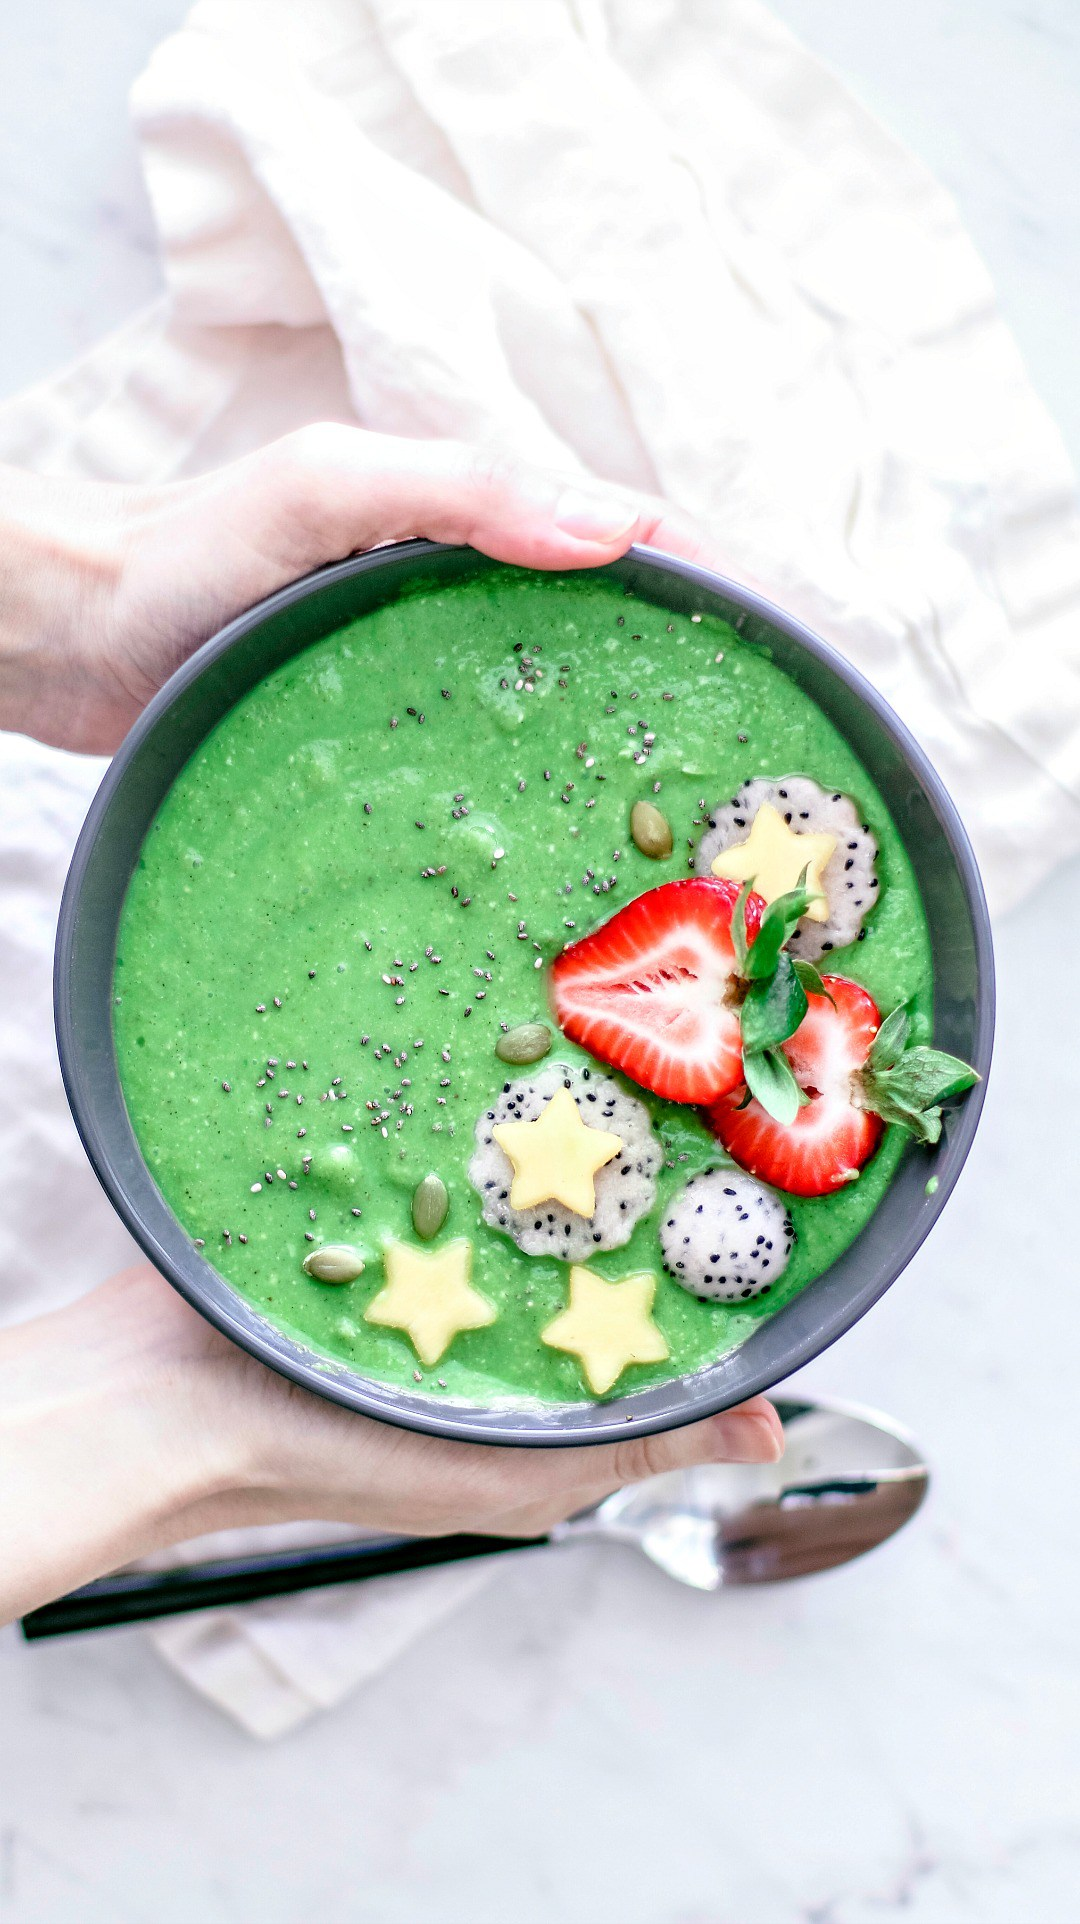 Healthy Green Smoothie Bowl With Broccoli Rabe from Killing thyme. get the recipe here. -